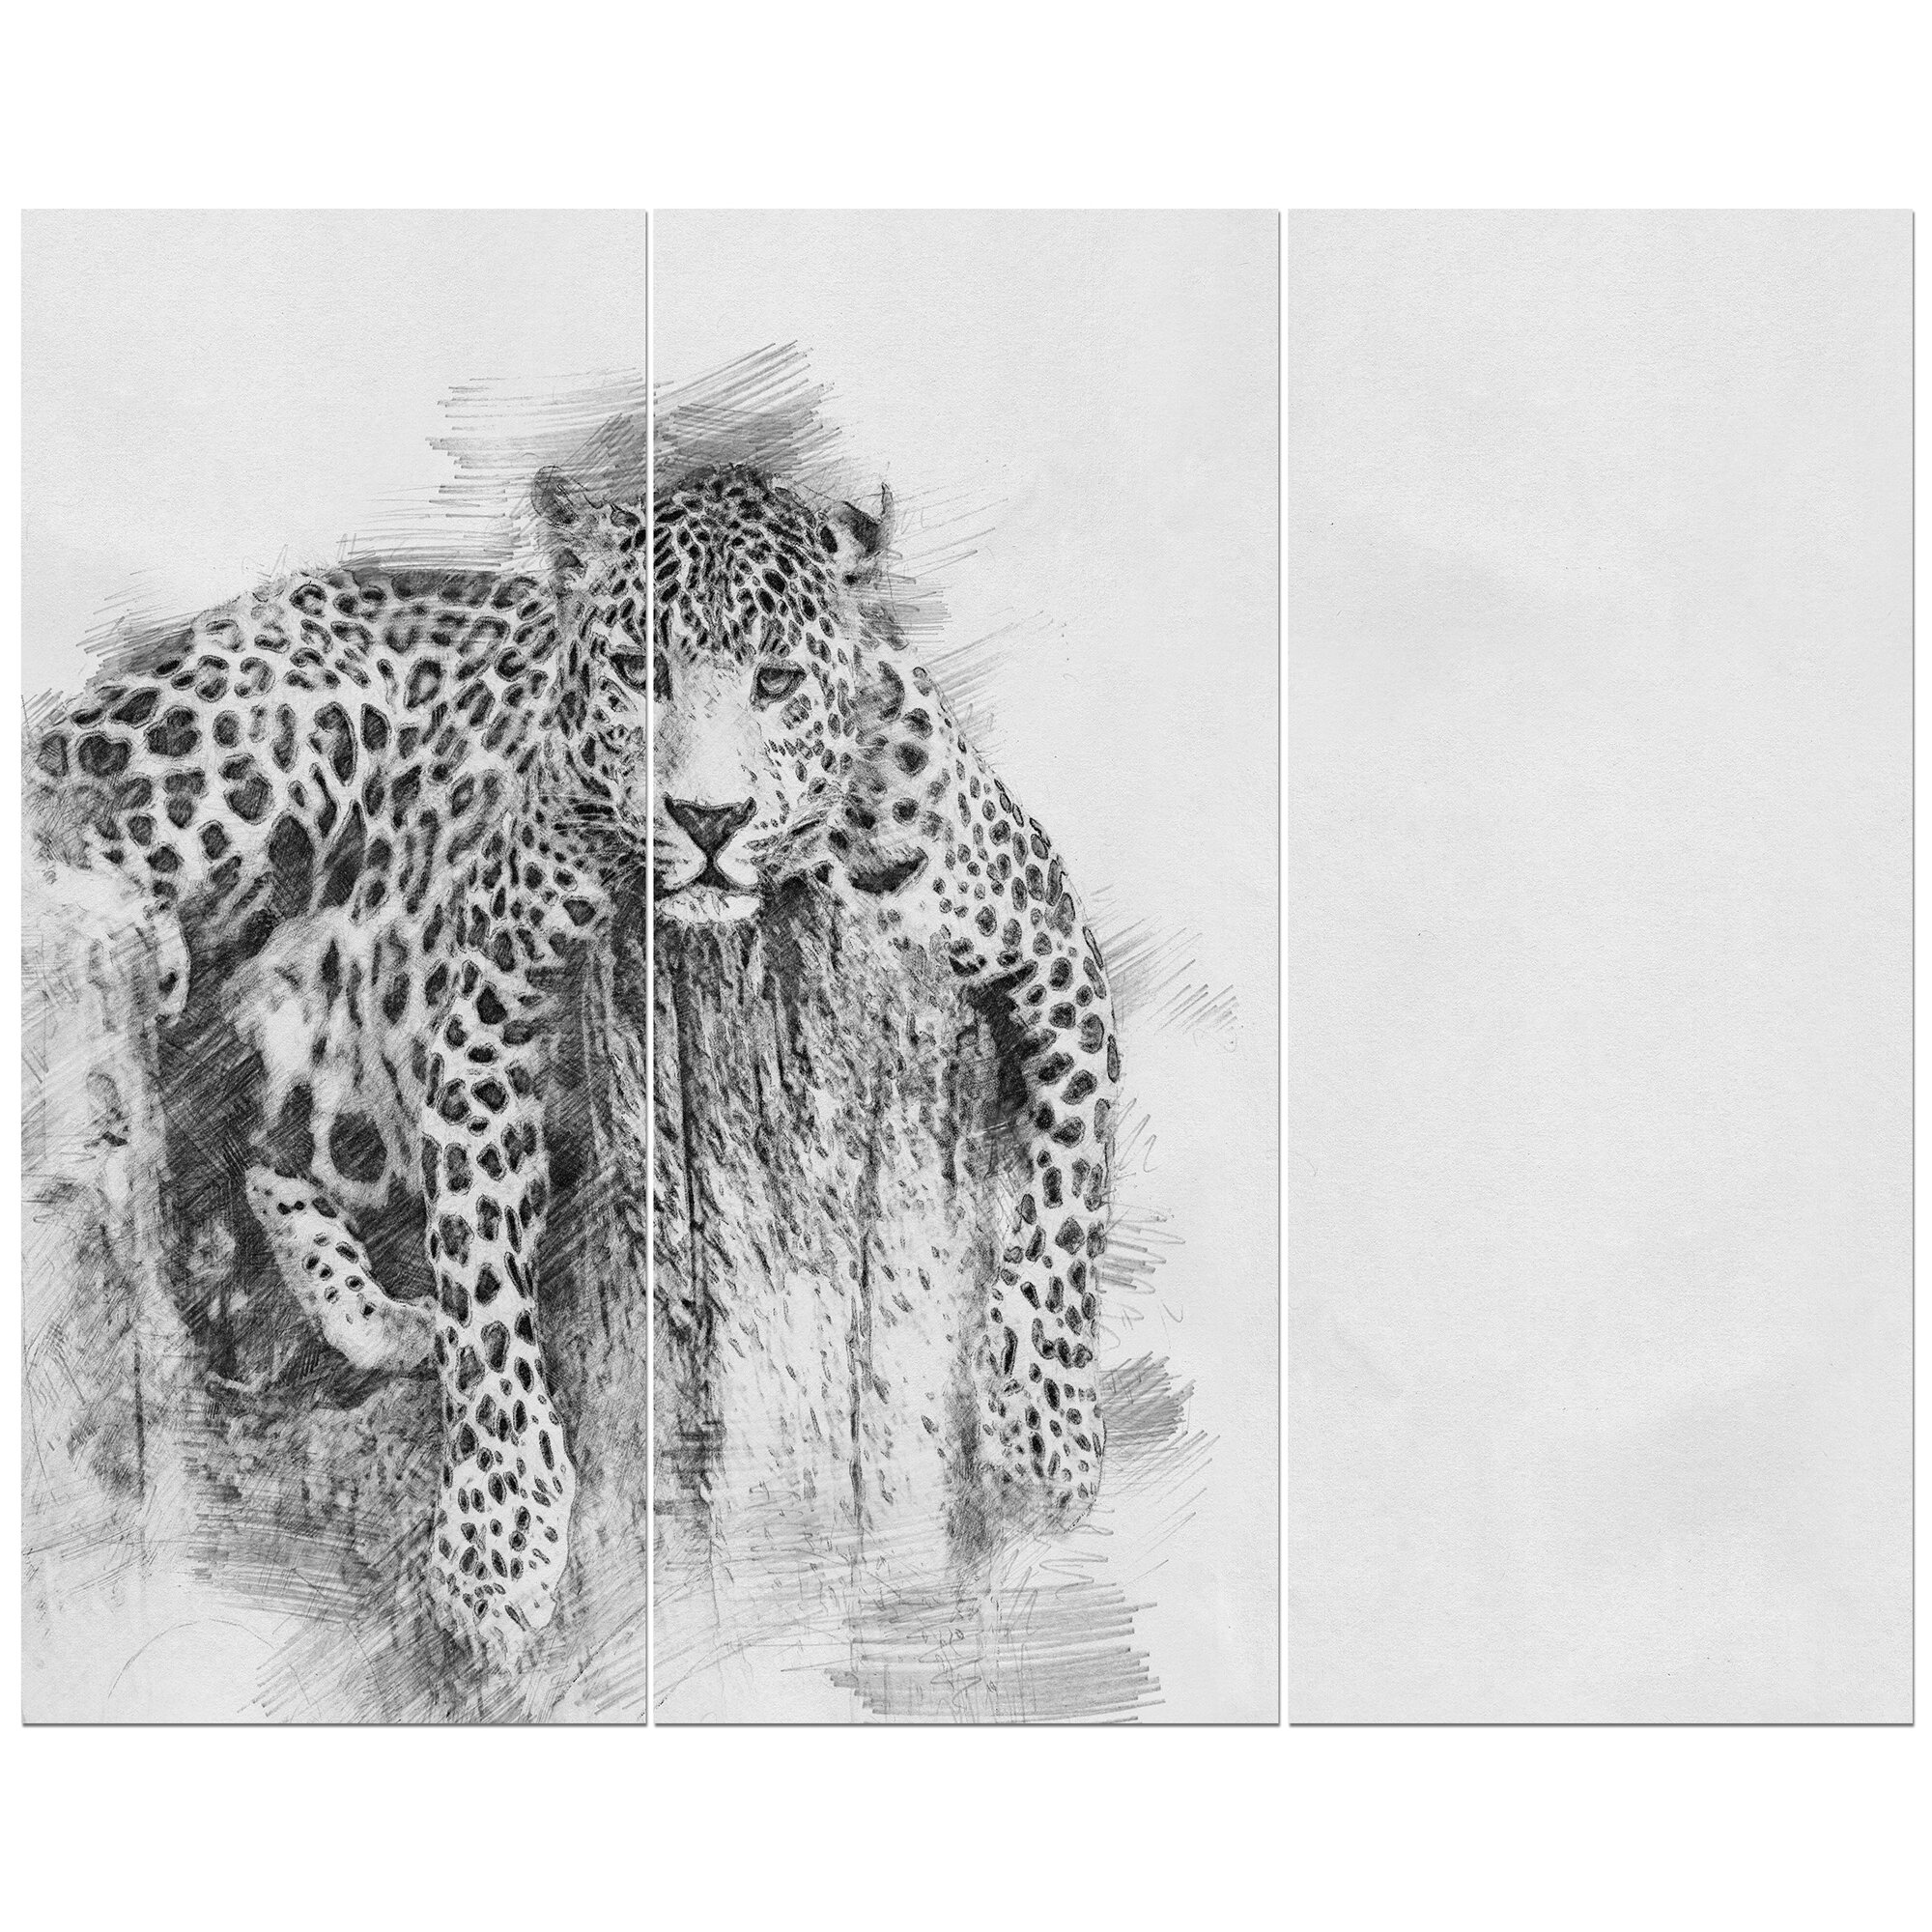 East Urban Home Leopard In Black And White Pencil Sketch Drawing Print Multi Piece Image On Wrapped Canvas Wayfair